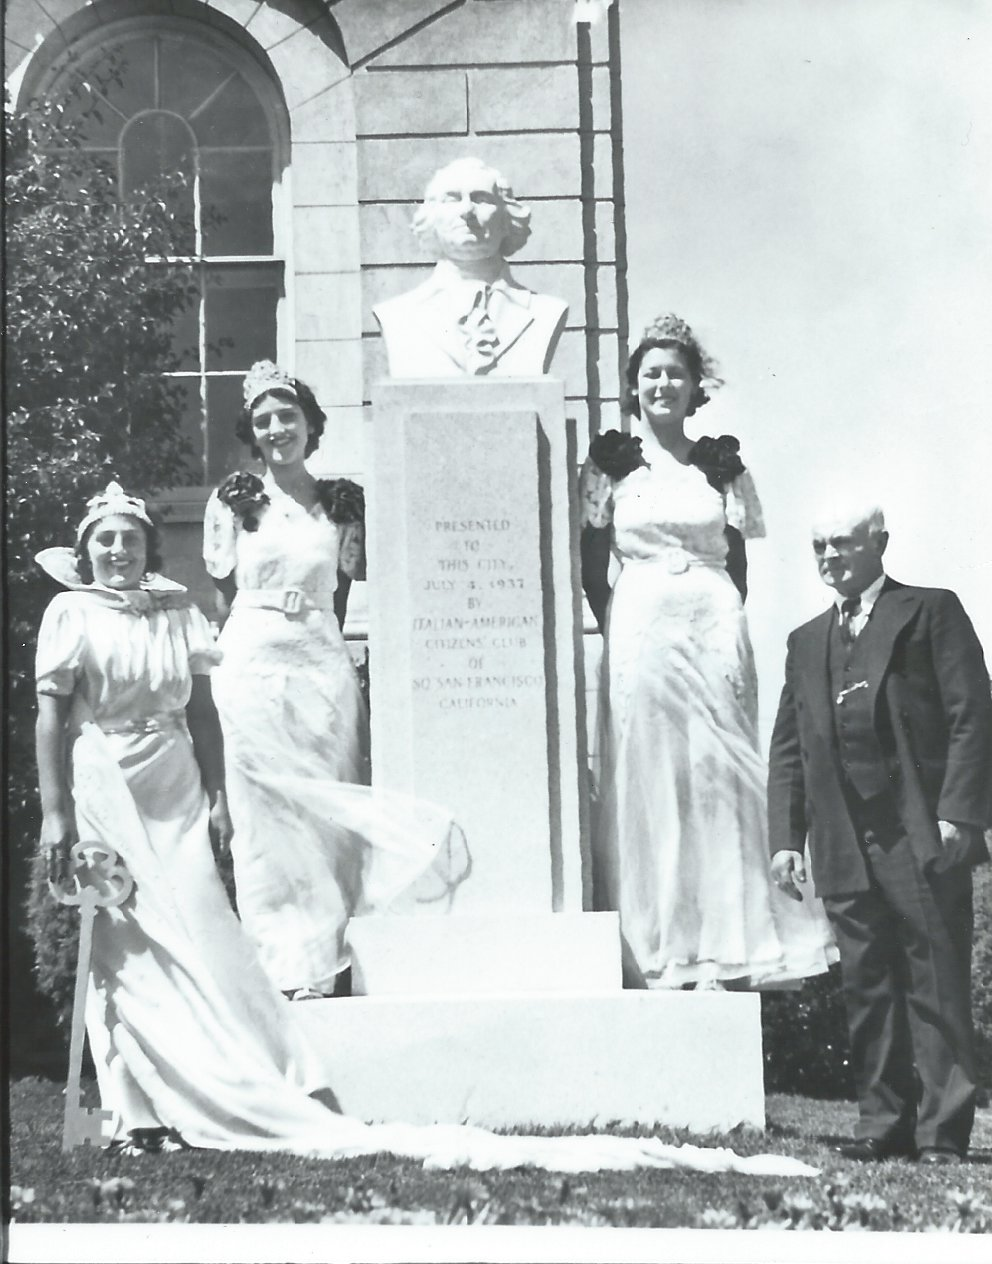 IACC On July 4, 1937 the IACC dedicated the George Washington statue on the City Hall Lawn. A rededicated is set for Oct 23, 2016 on the steps of the City Hall